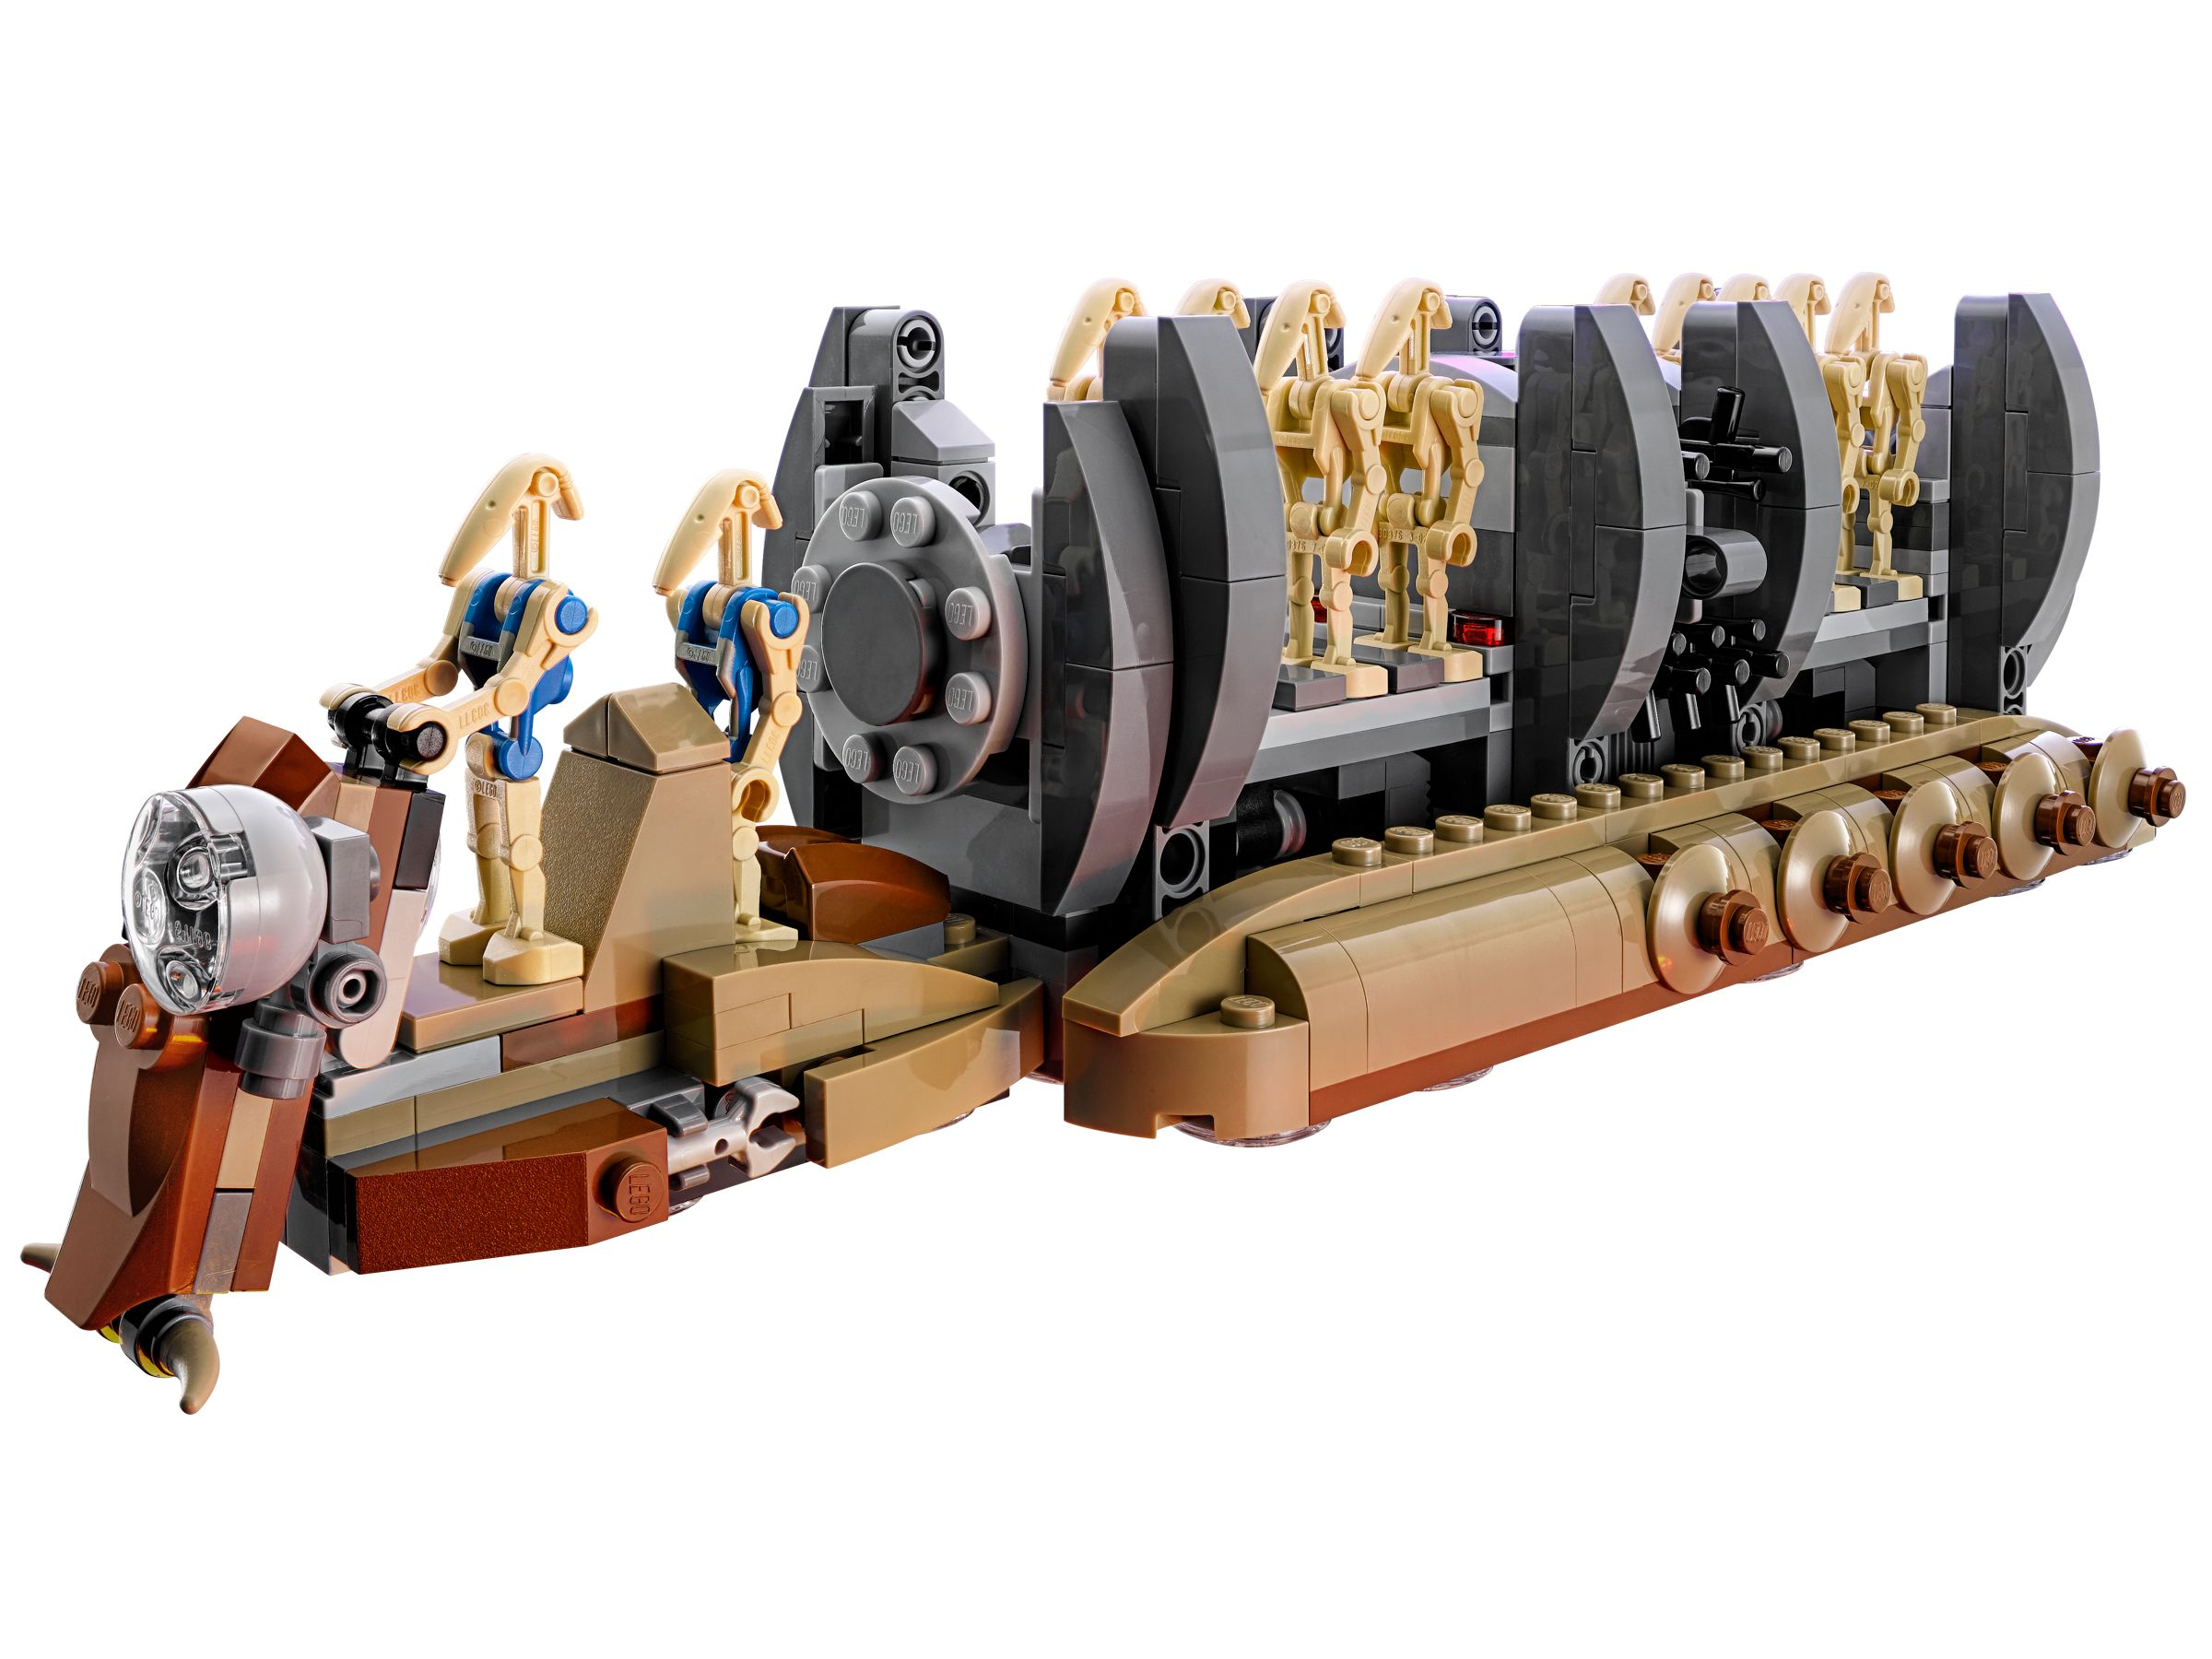 LEGO Star Wars 75086 Battle Droid™ Troop Carrier LEGO_75086_alt2.jpg